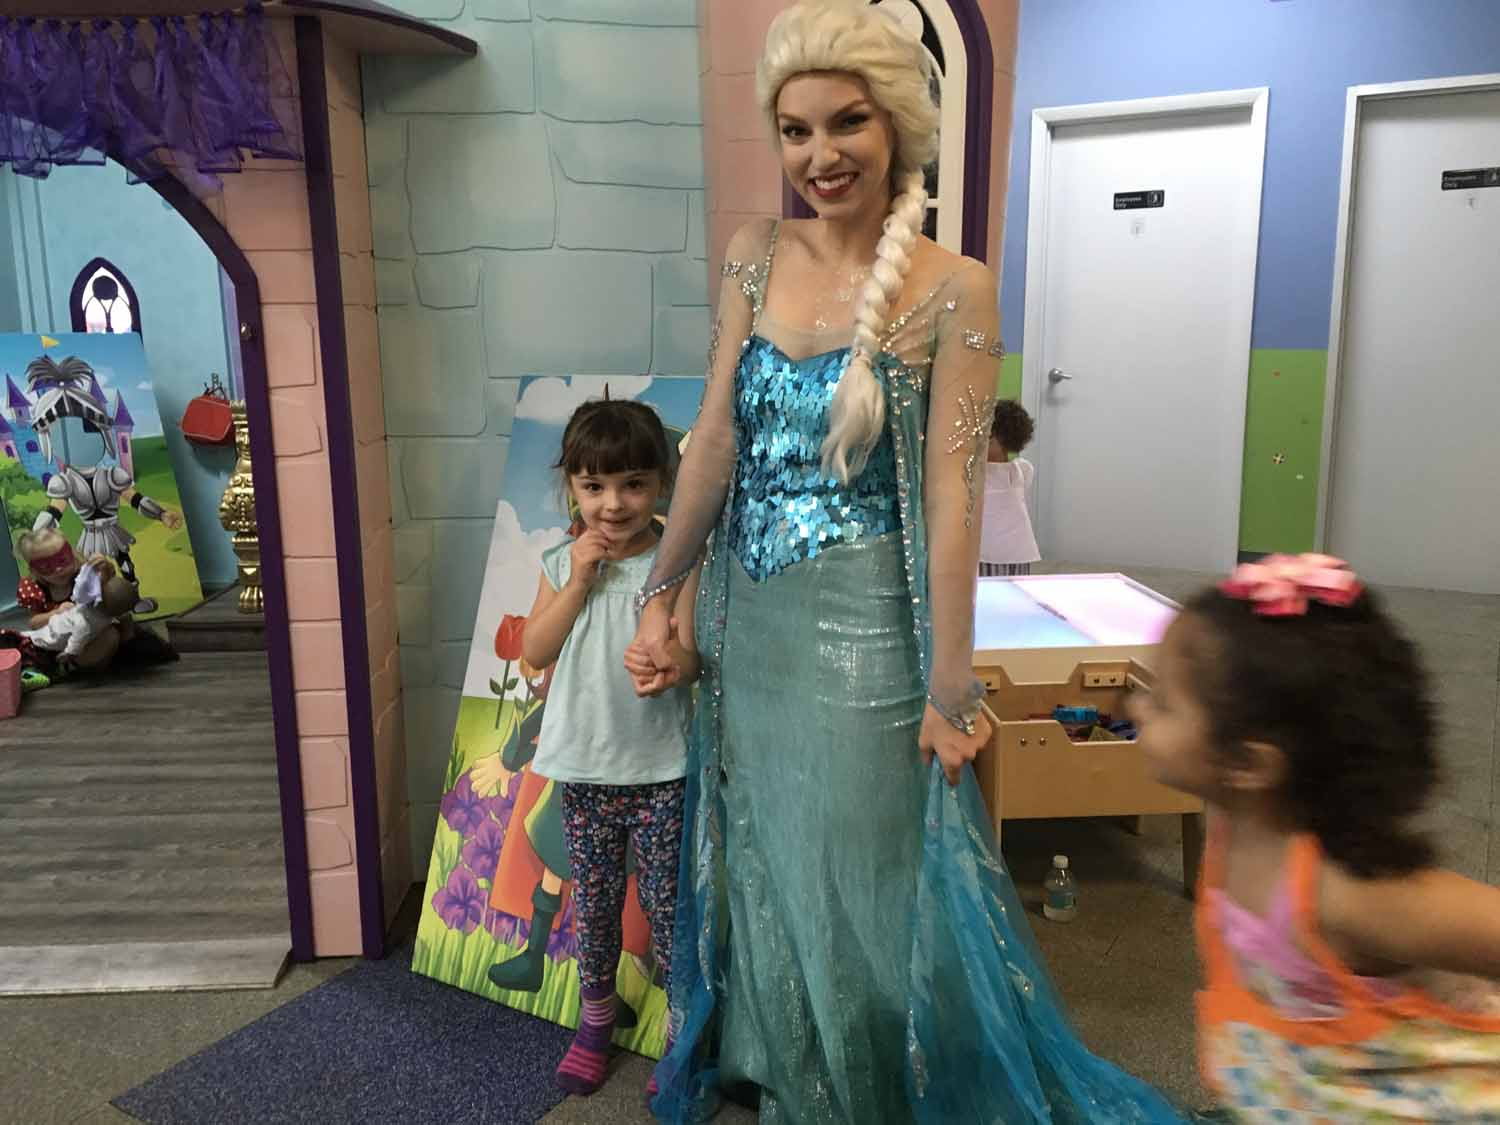 frozen themed birthday party in orlando florida - princesses and princes (13).jpg